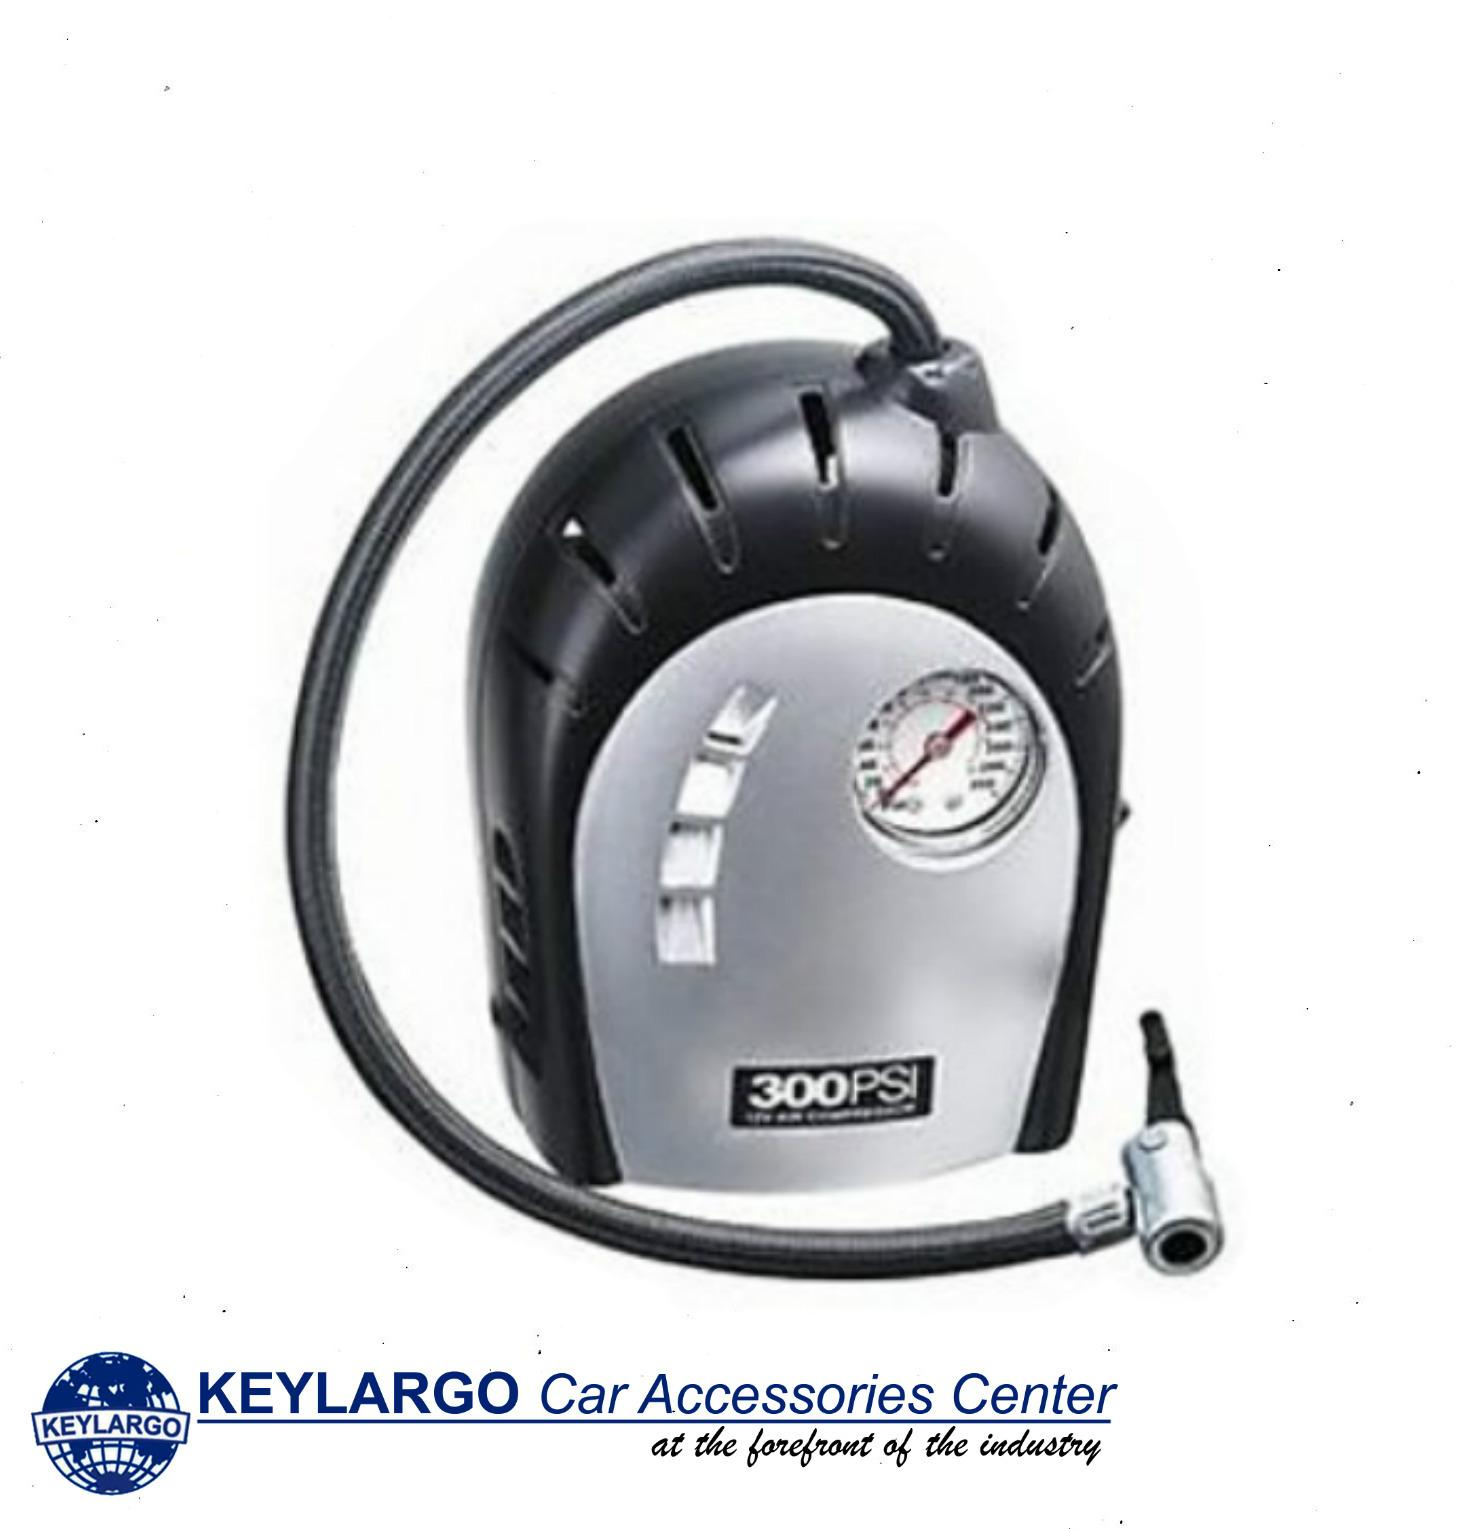 Coido Philippines Coido Price List Air Pumps Vacuum Cleaners